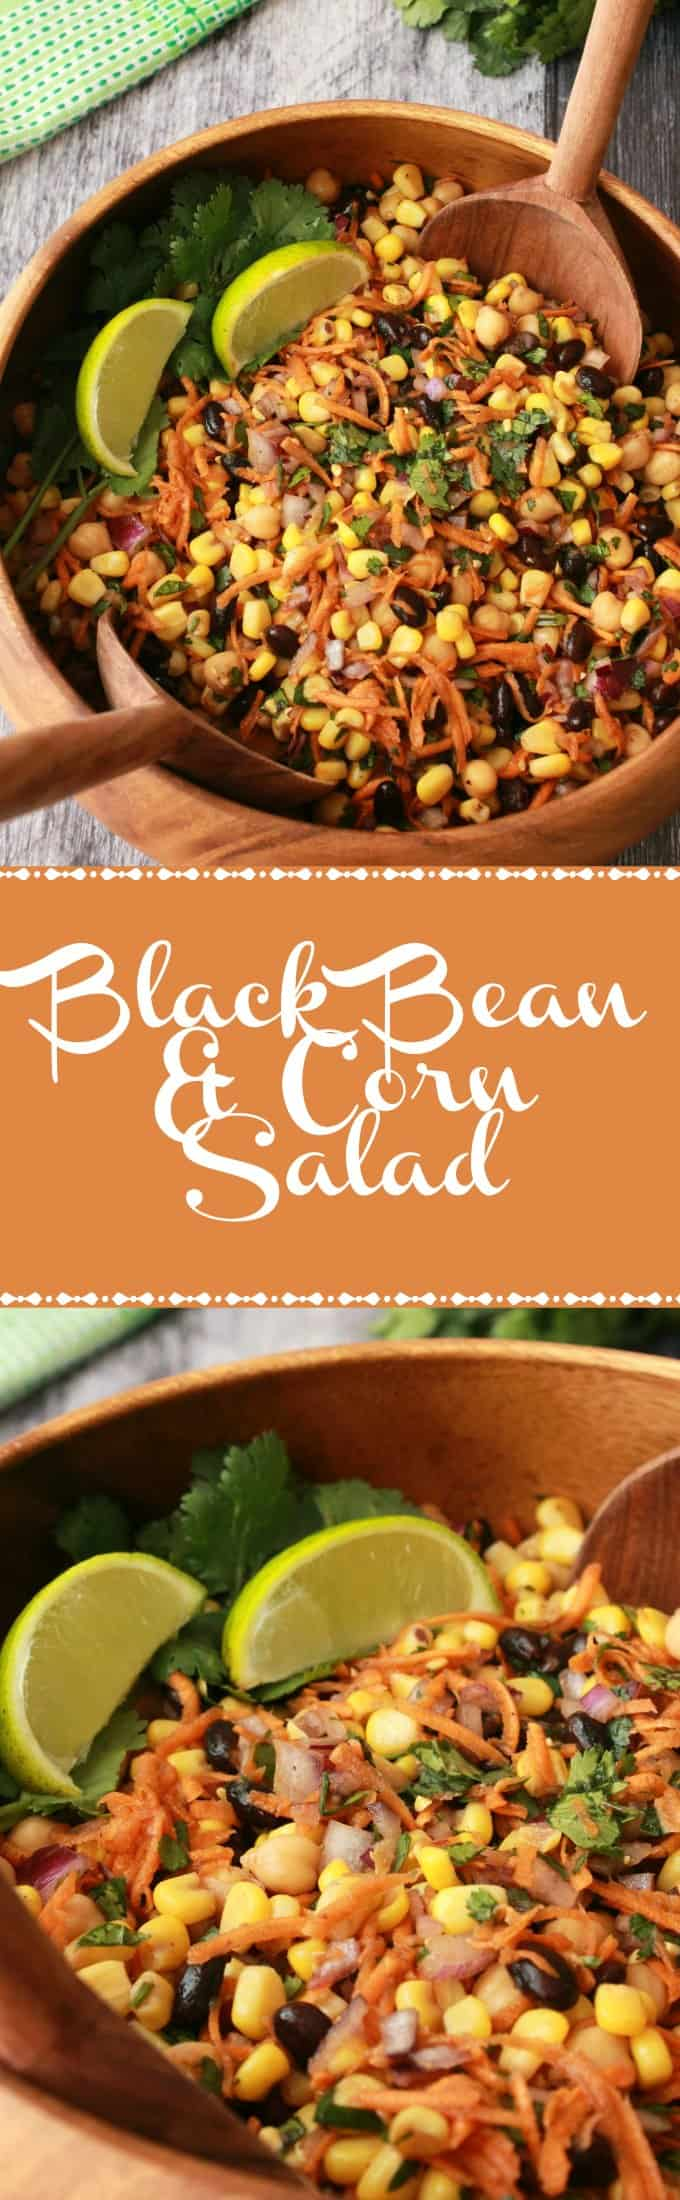 Colorful and flavorful black bean and corn salad. This salad is nutritious and filling as well as being vegan and gluten-free! | lovingitvegan.com